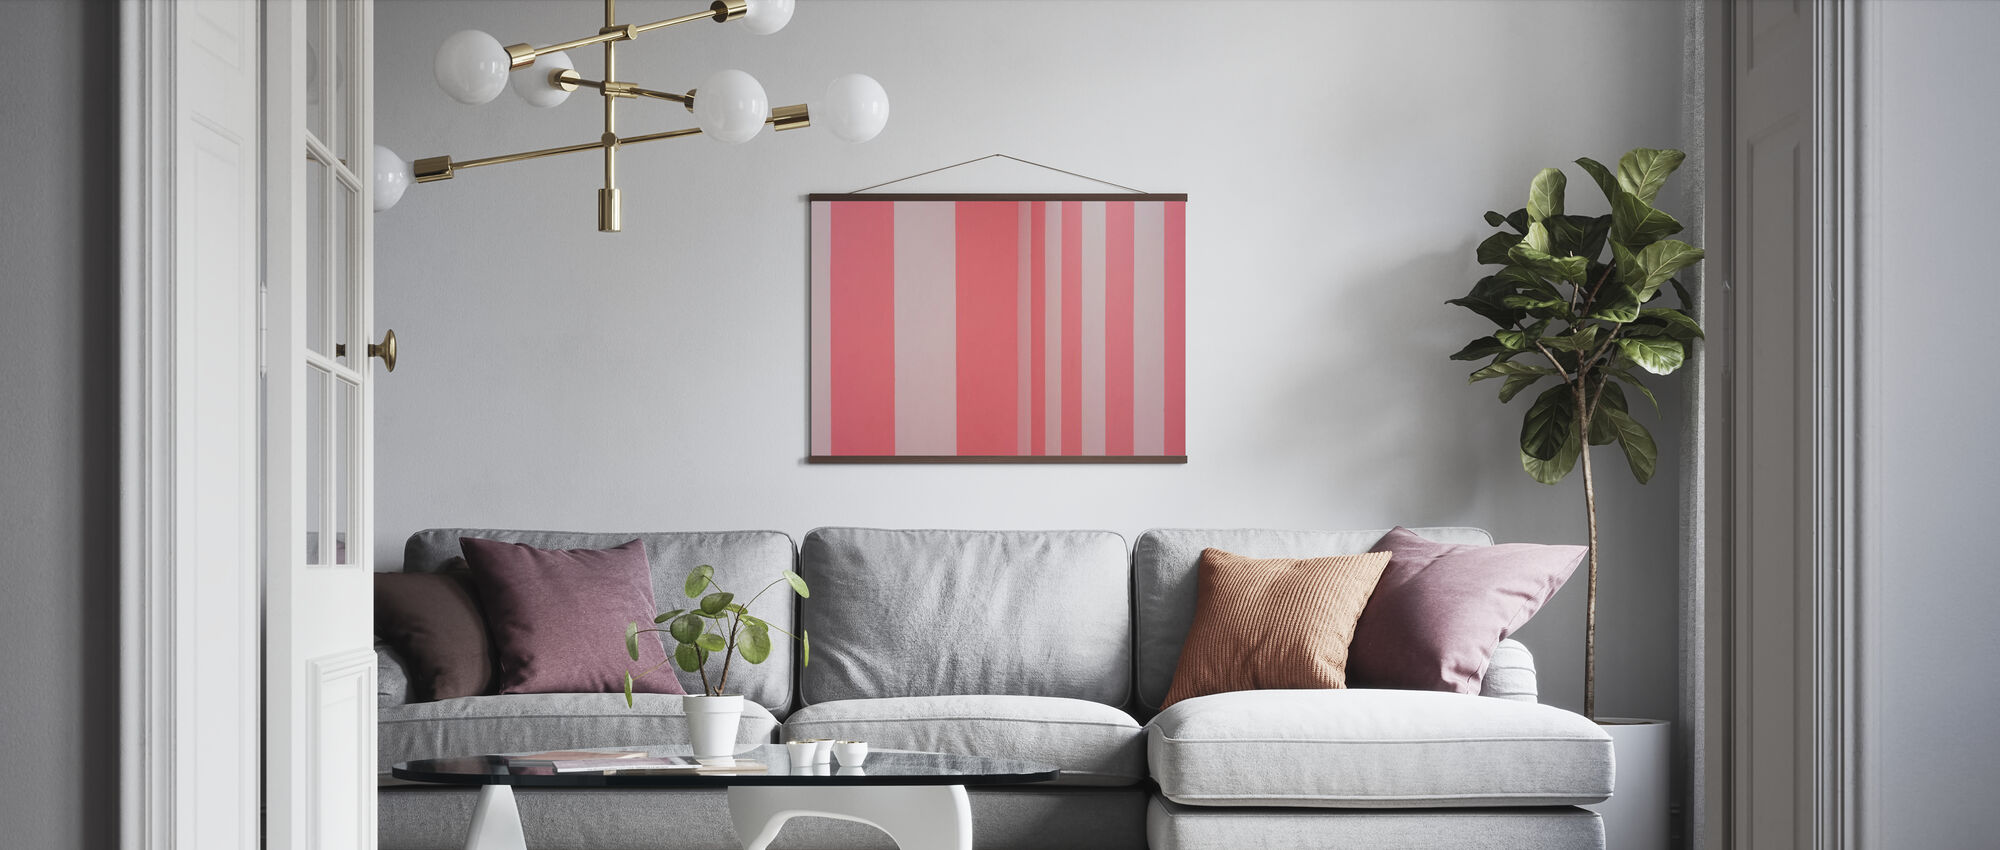 Wrapping Paper - Poster - Living Room